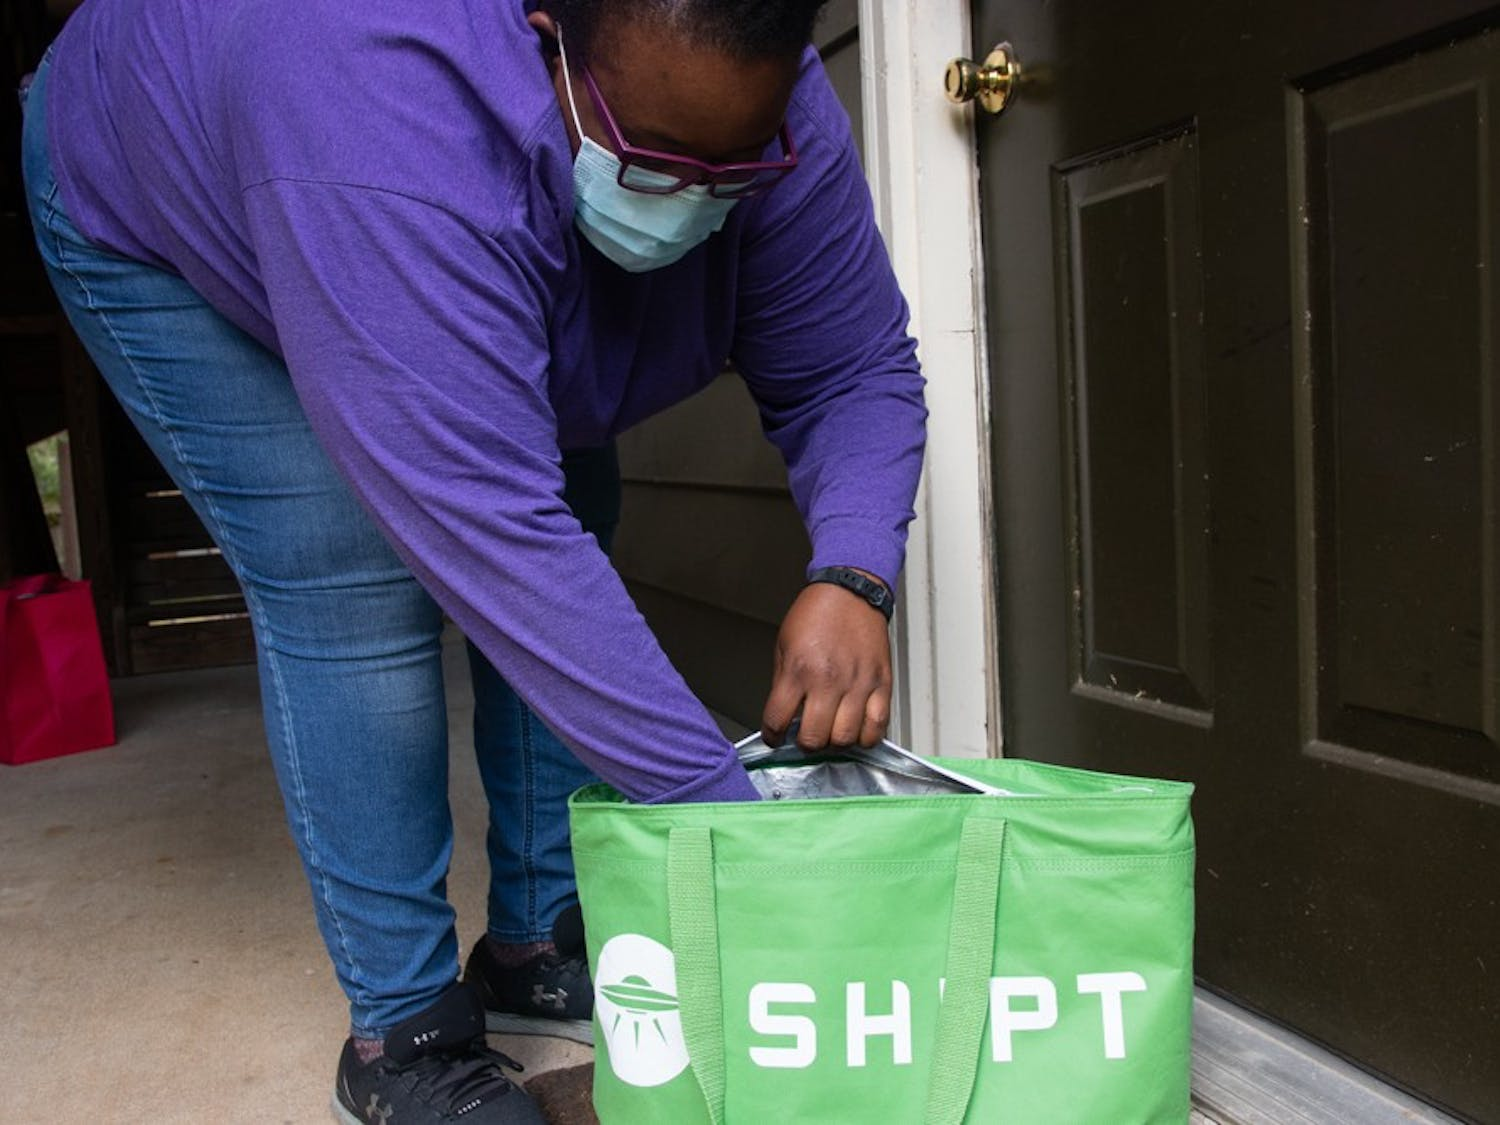 Delivery driver Daisy Otutuoloro prepares for a food delivery through Shipt in Raleigh, NC on Saturday, Aug. 29, 2020. Many unemployed workers in the Triangle have been turning to gig economy platforms such as these to supplement income lost due to the COVID-19 pandemic.